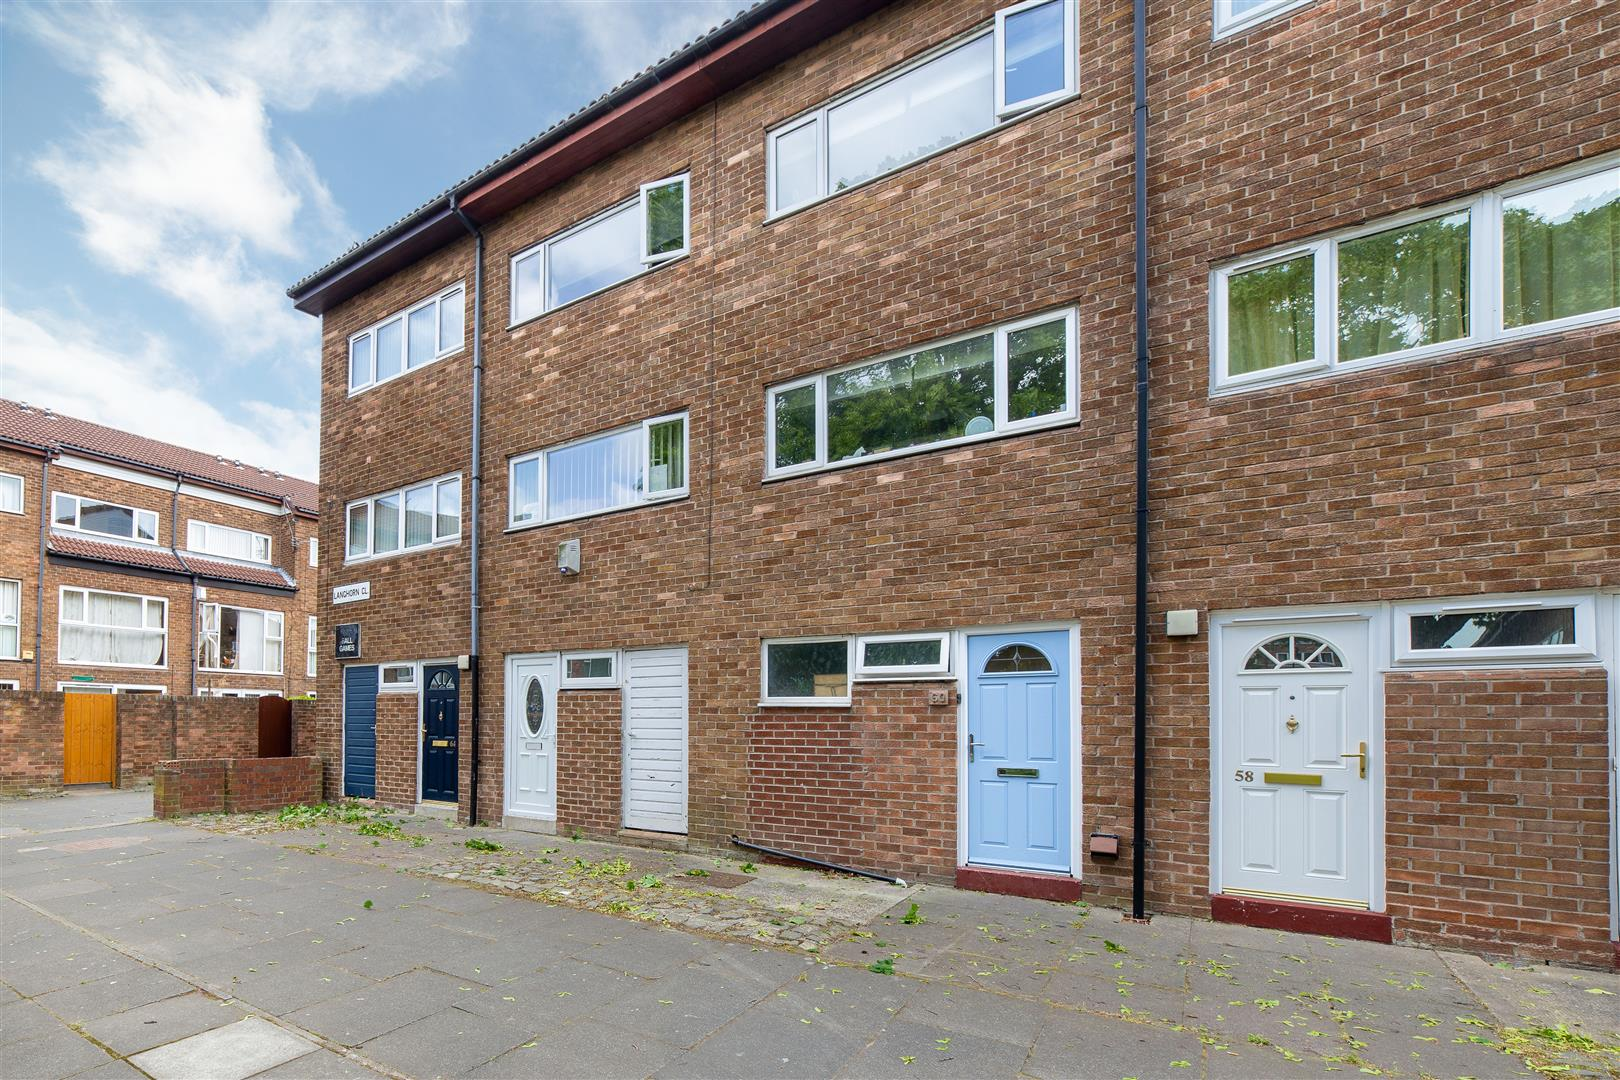 3 bed town house for sale in Newcastle Upon Tyne, NE6 1XL  - Property Image 1